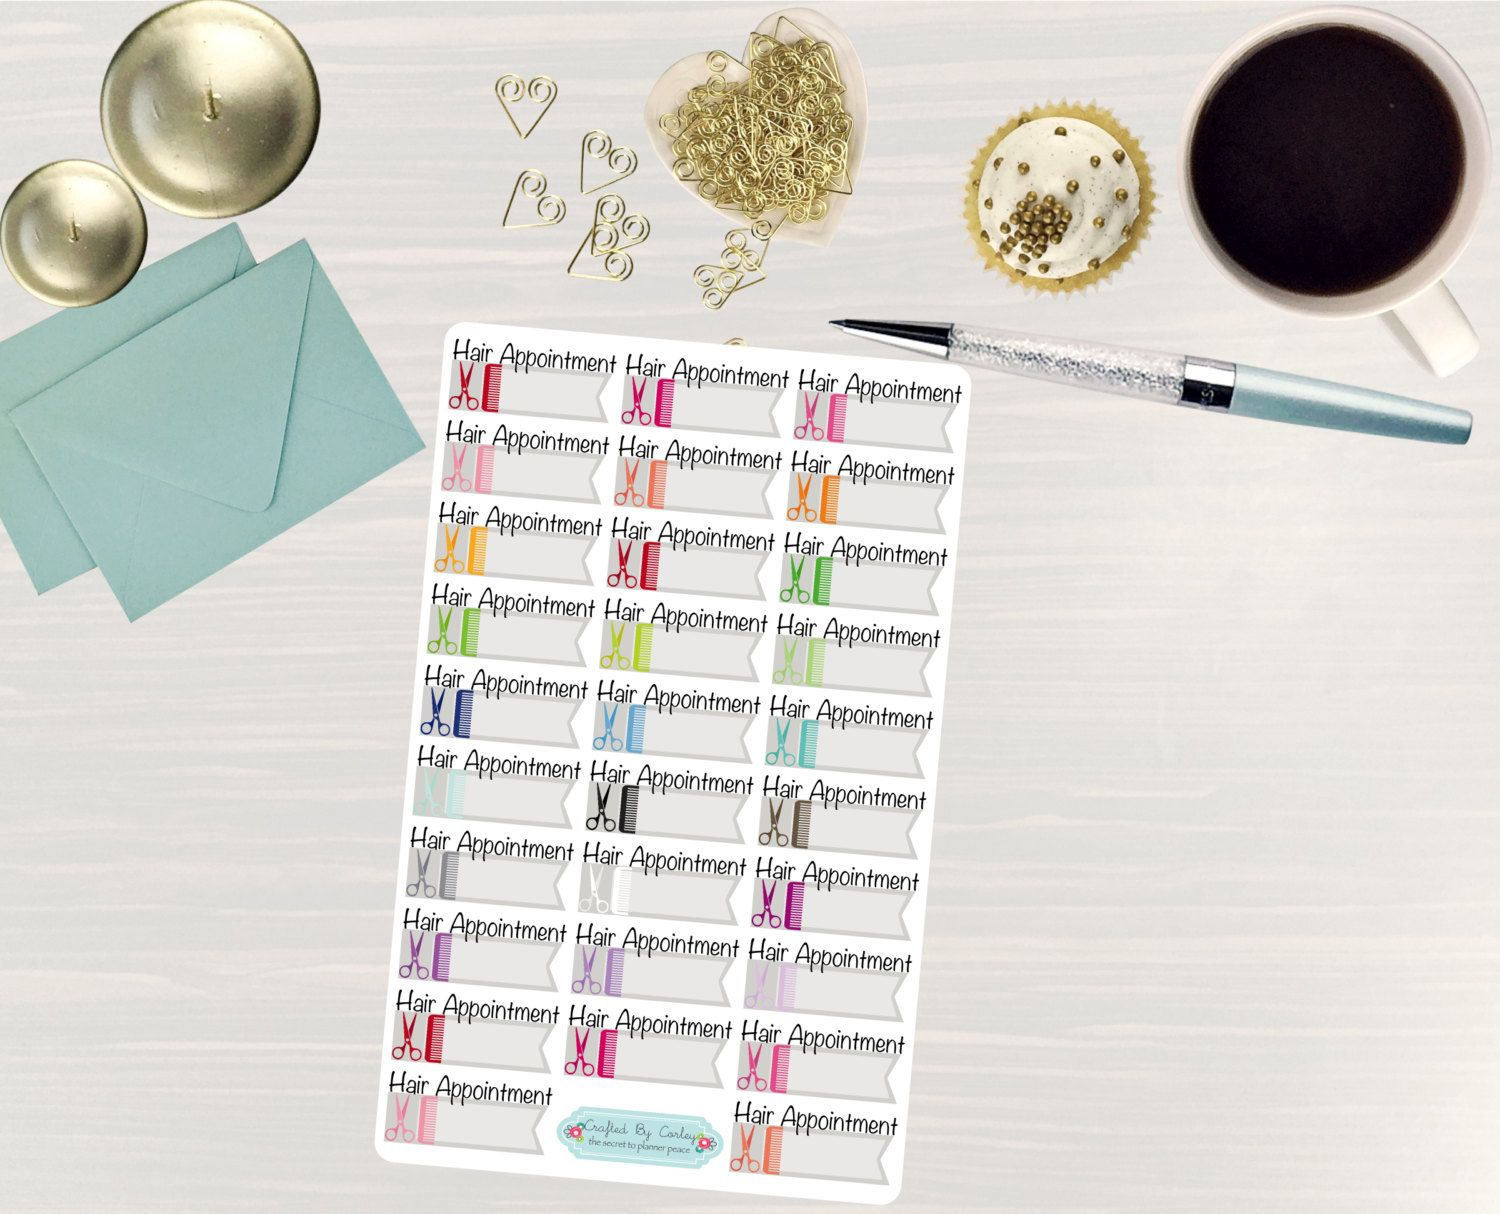 Available at CraftedByCorley on Etsy: Hair Appointment Colorful Stickers - Planner Stickers - Erin Condren Happy Planner Plum Paper